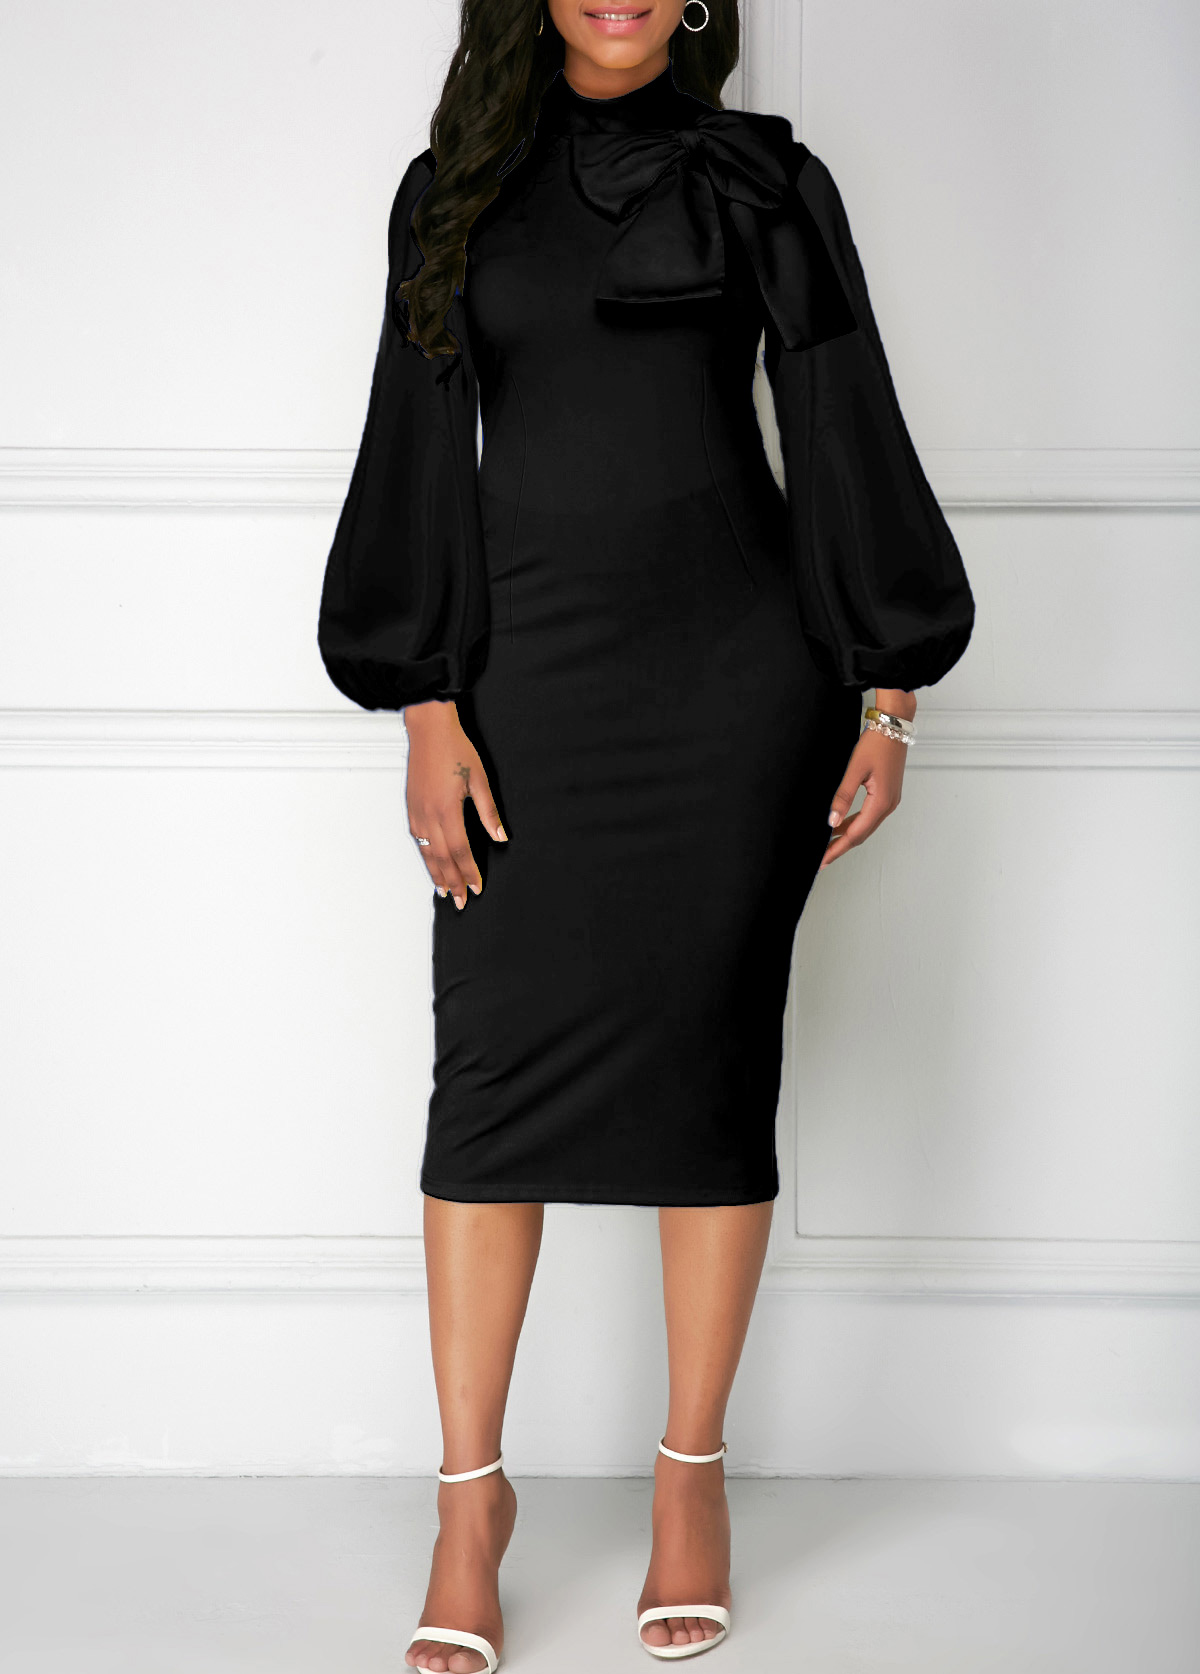 Black Bowknot Neck Lantern Sleeve Sheath Dress